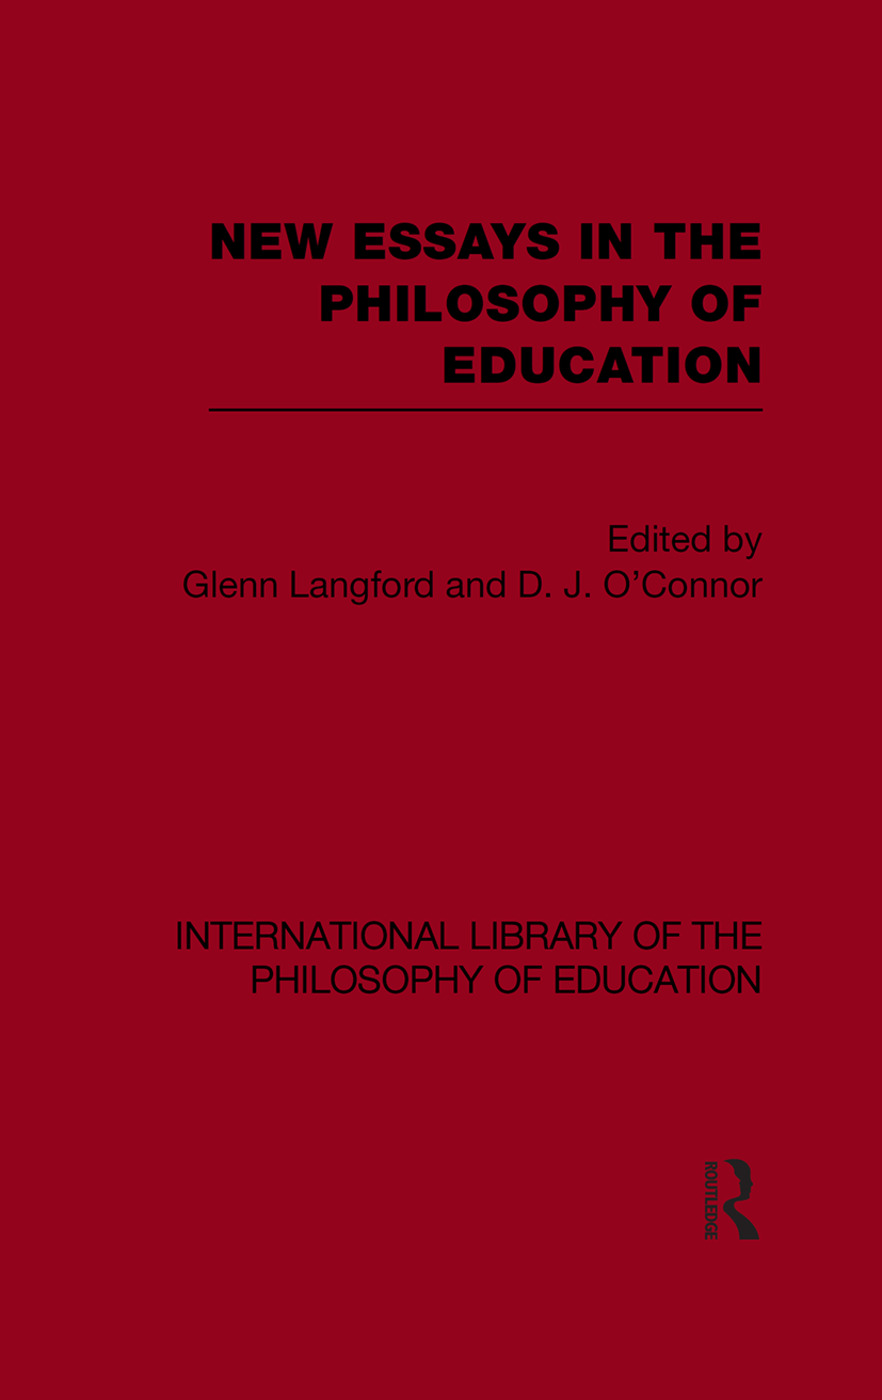 New Essays in the Philosophy of Education (International Library of